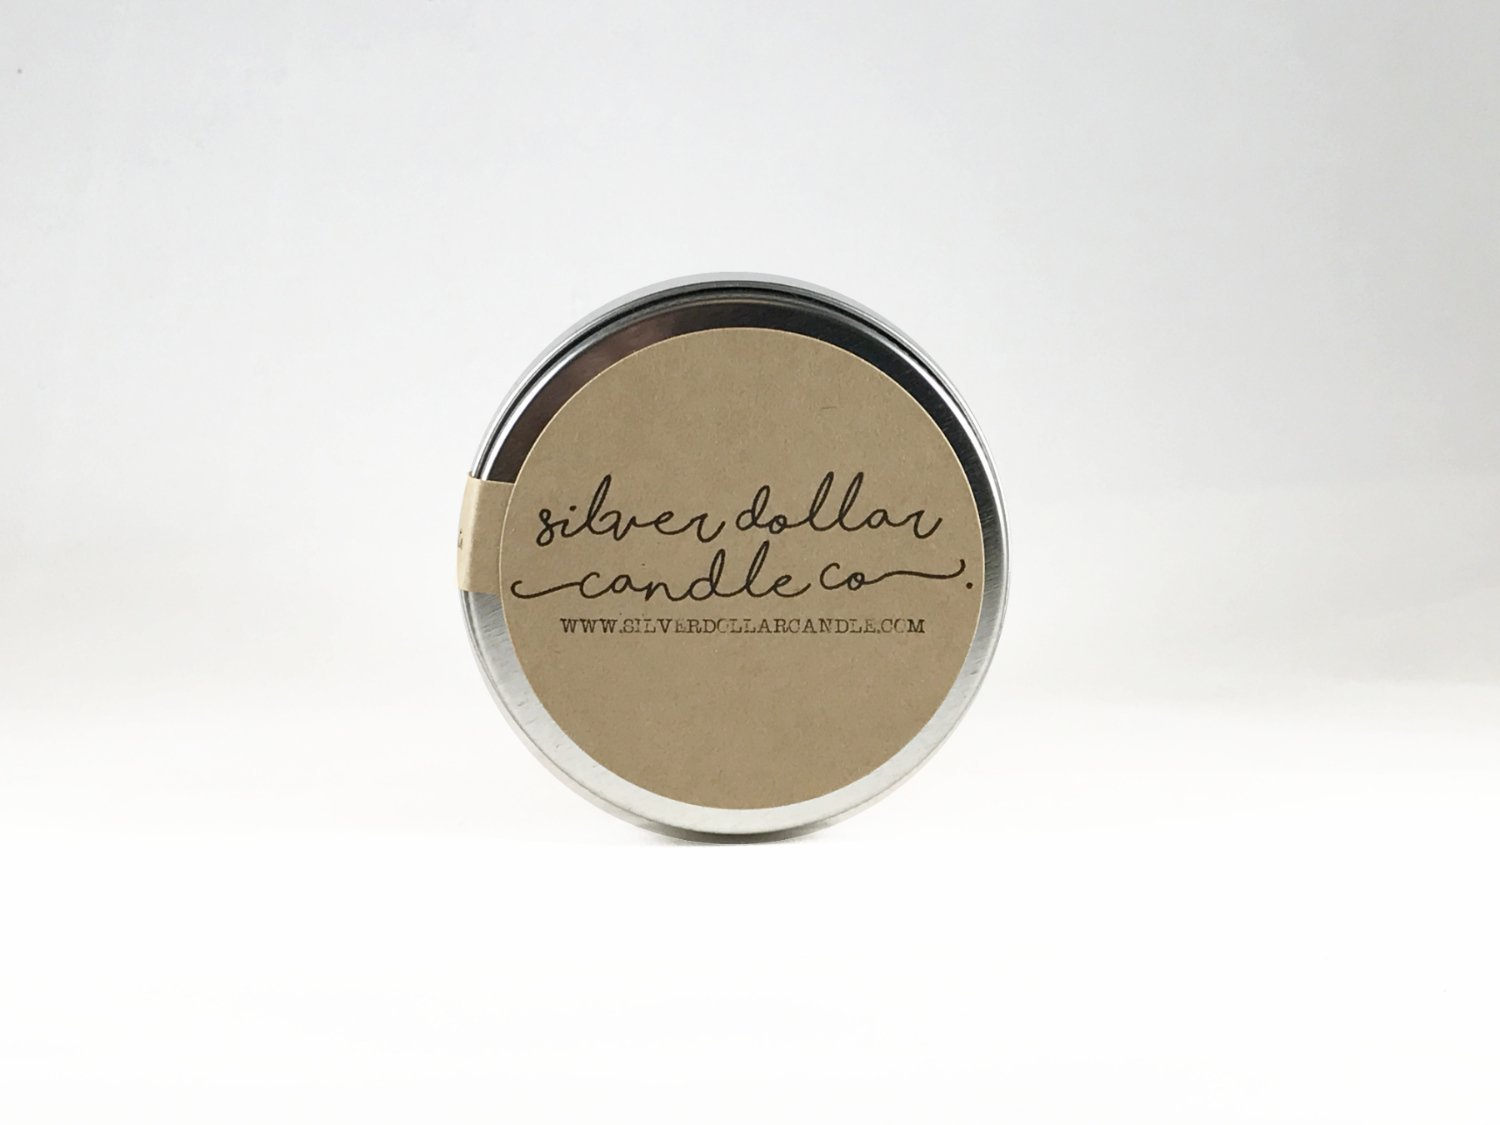 Personalized 8oz Handmade 100% Soy Wax Scented Candle by Silver Dollar Candle Co. by Silver Dollar Candle Co. (Image #4)